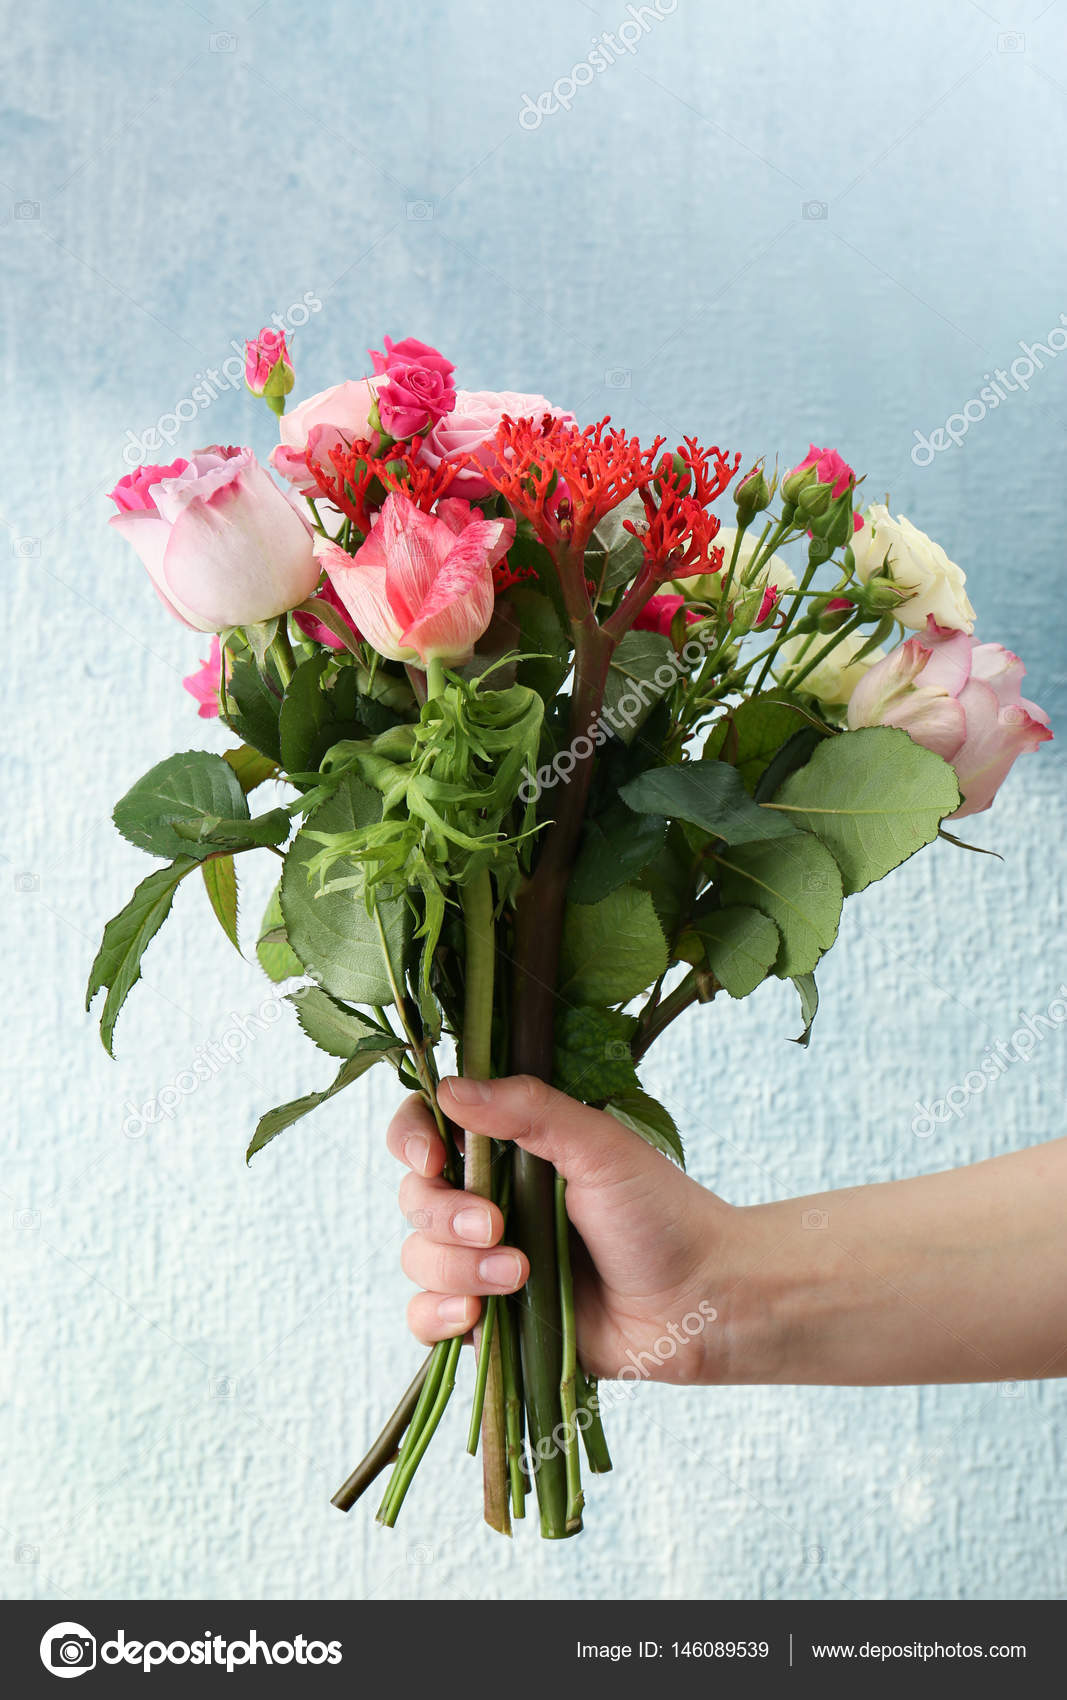 Woman hand holding bouquet of flowers stock photo belchonock woman hand holding bouquet of fresh flowers on light background photo by belchonock izmirmasajfo